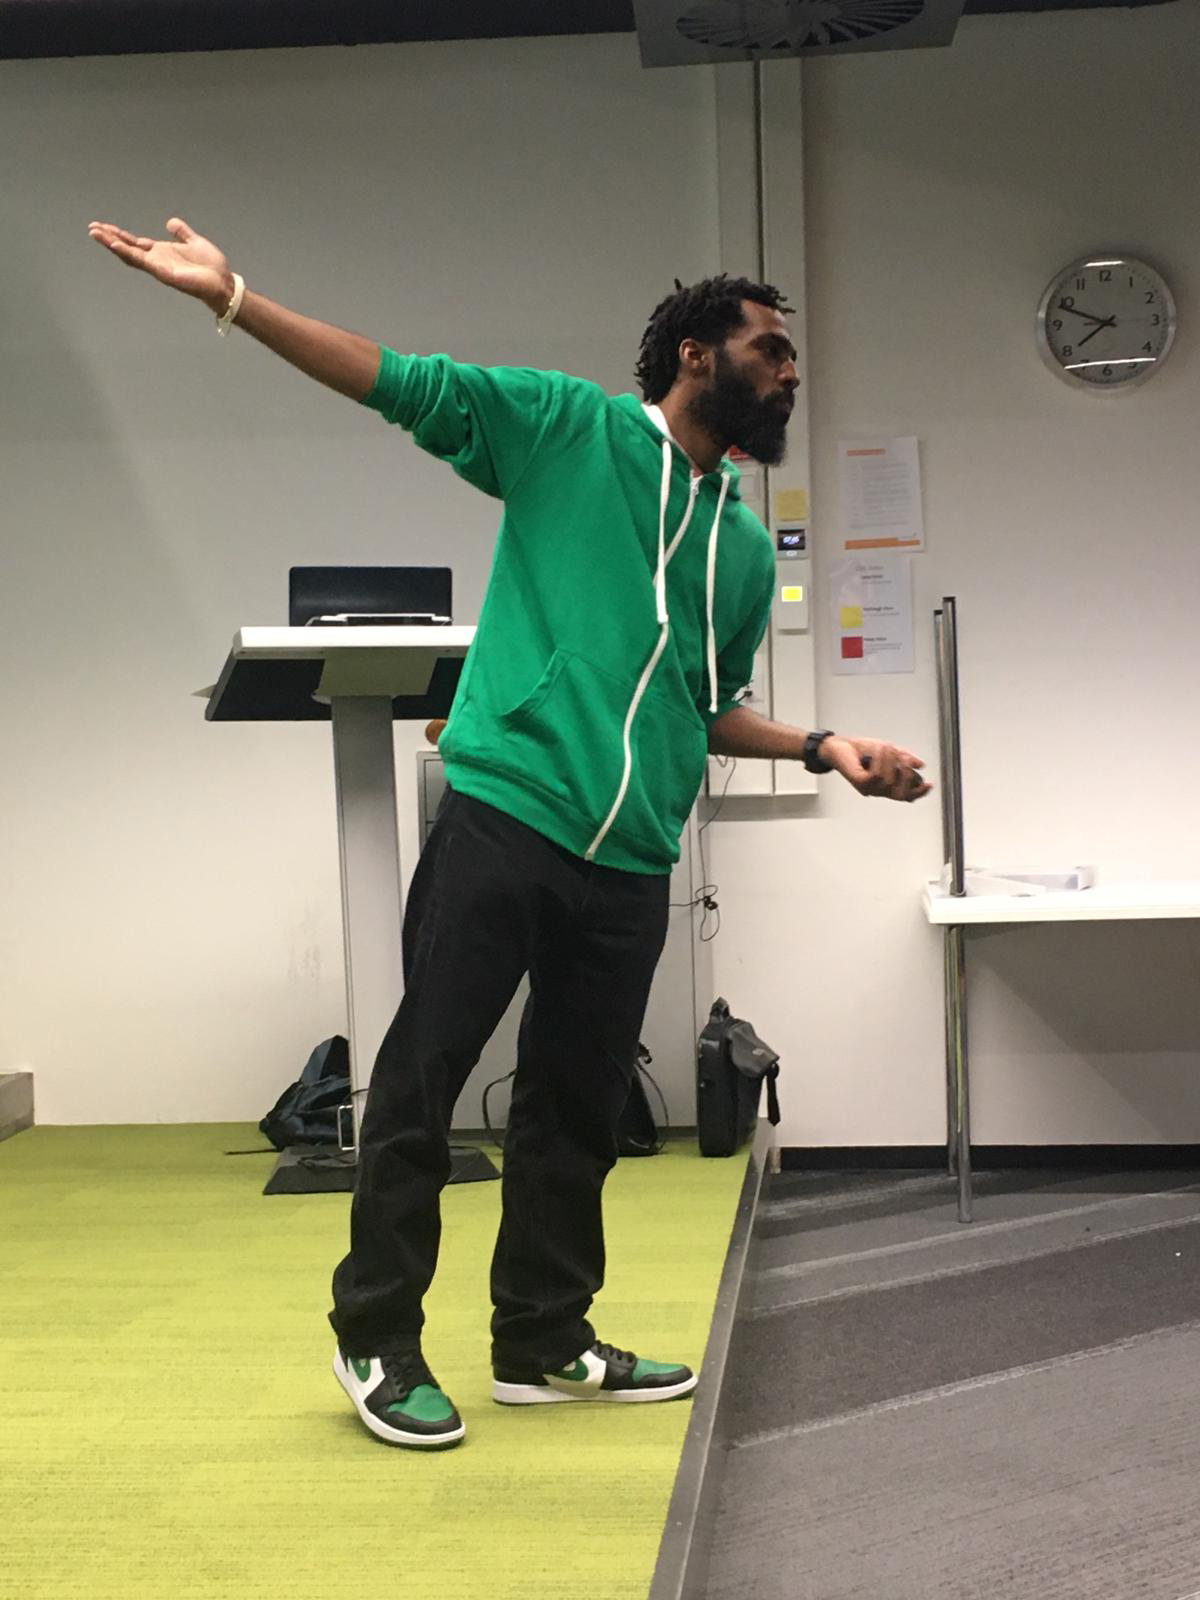 This is a photograph of the trainer and speaker Josuël Rogers pointing during a keynote speech